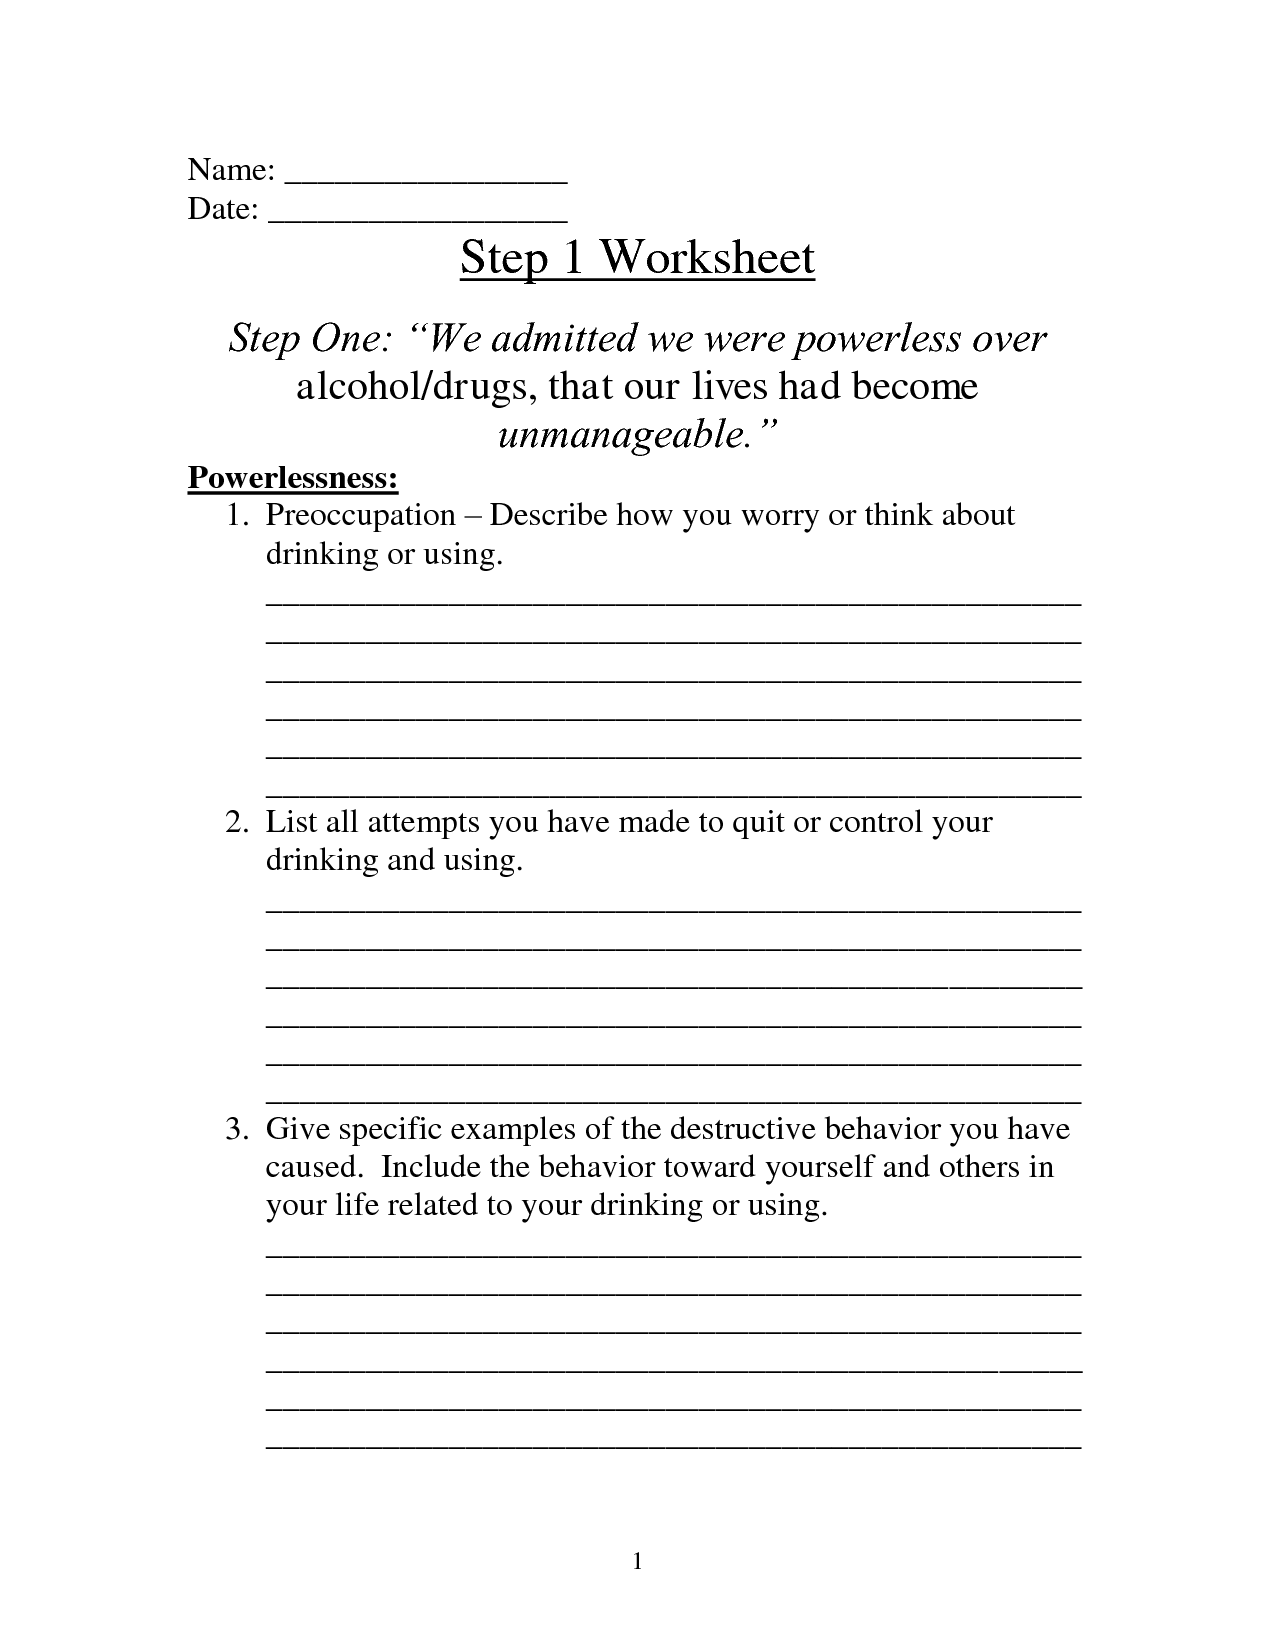 28 Alcoholics Anonymous Step 4 Worksheet